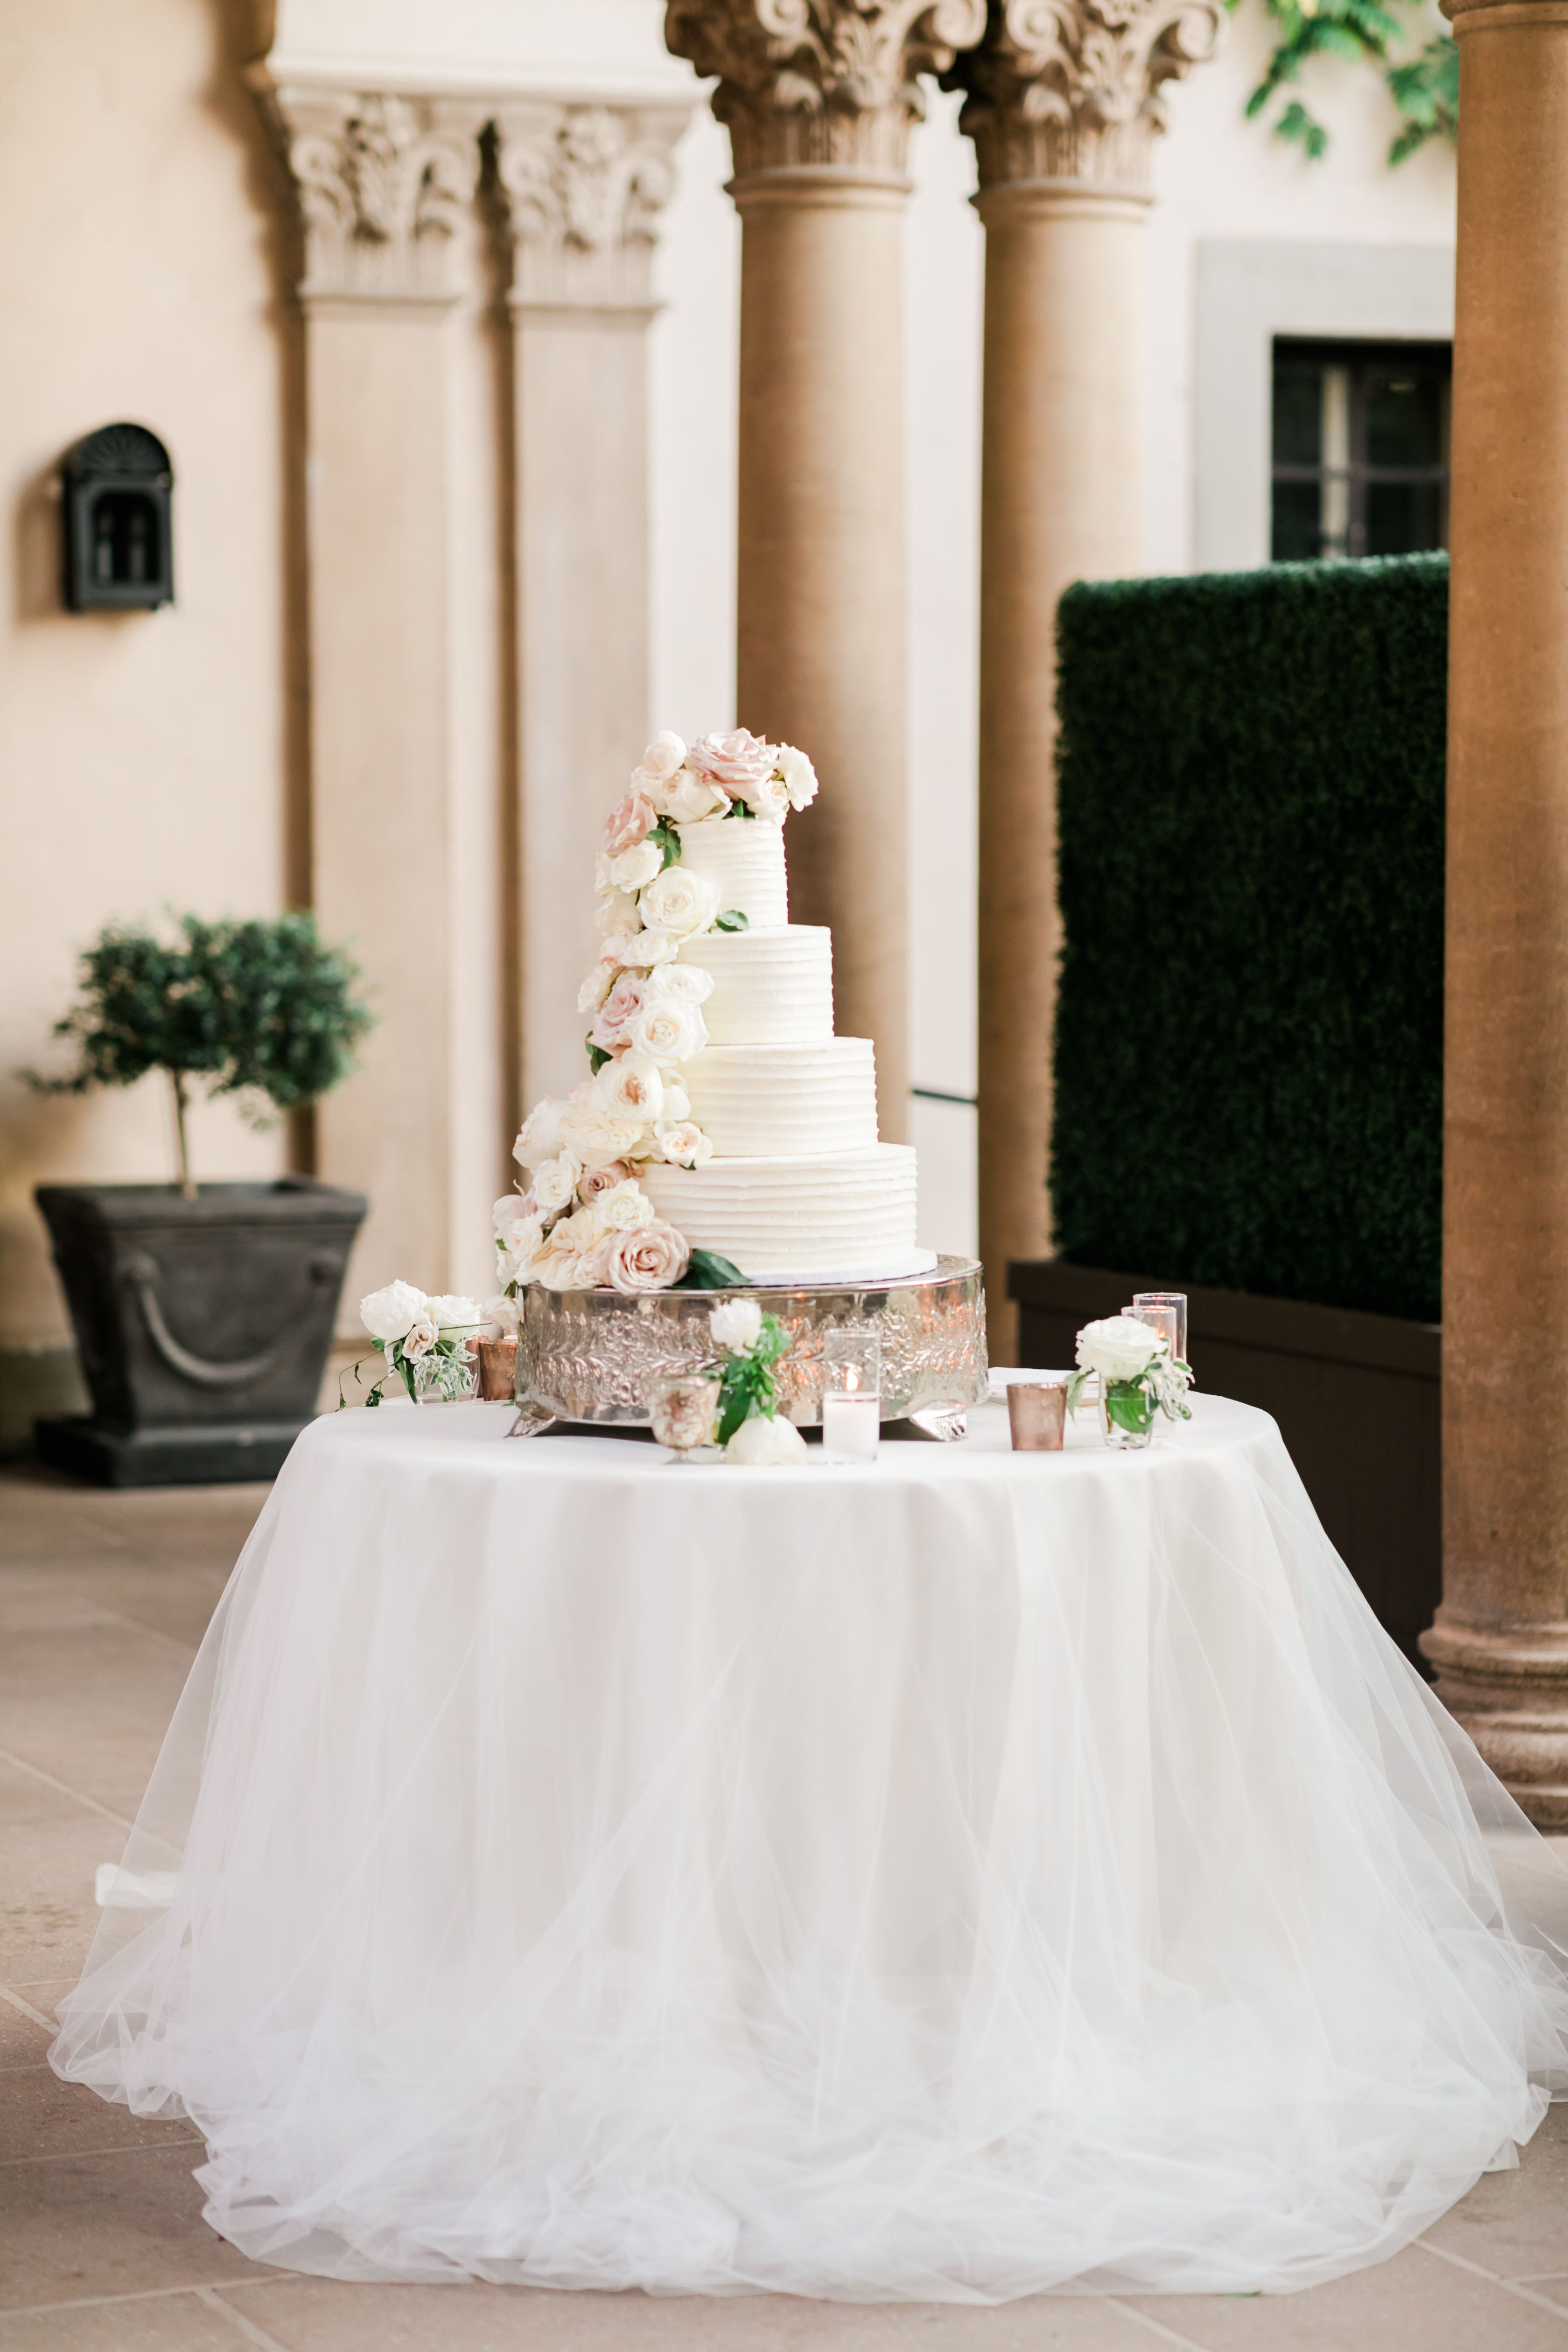 Whimsical Wedding With A Neutral Color Palette At The Athenaeum Cake Table Decorations Wedding Cake Table Wedding Cake Table Decorations